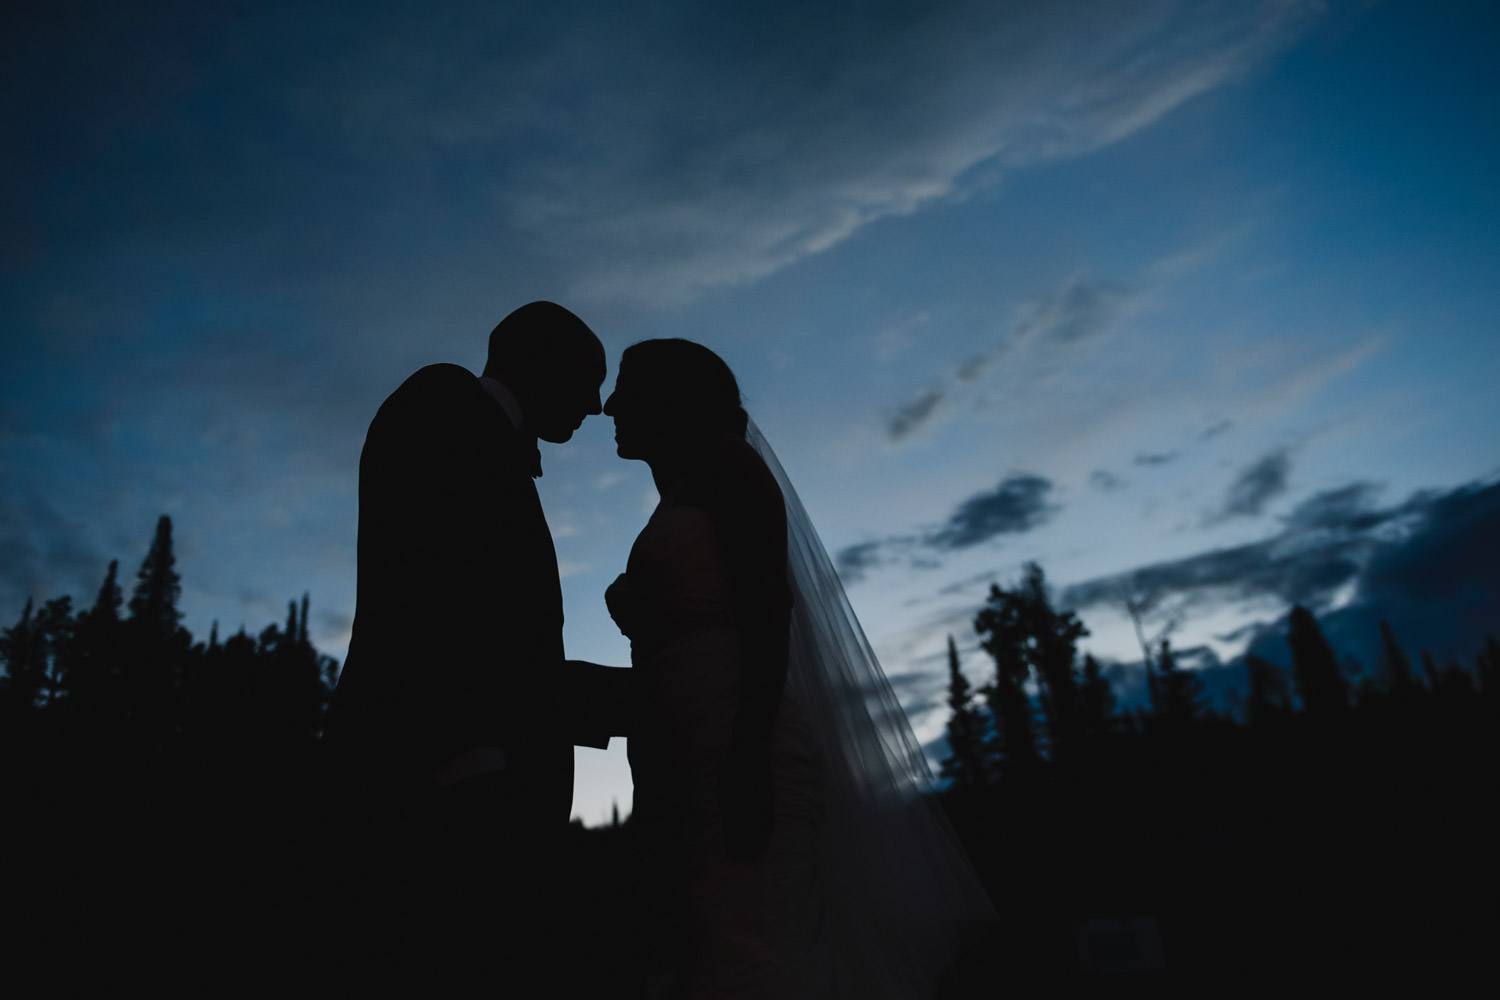 Red Pine Lodge bride and groom at dusk wedding photo